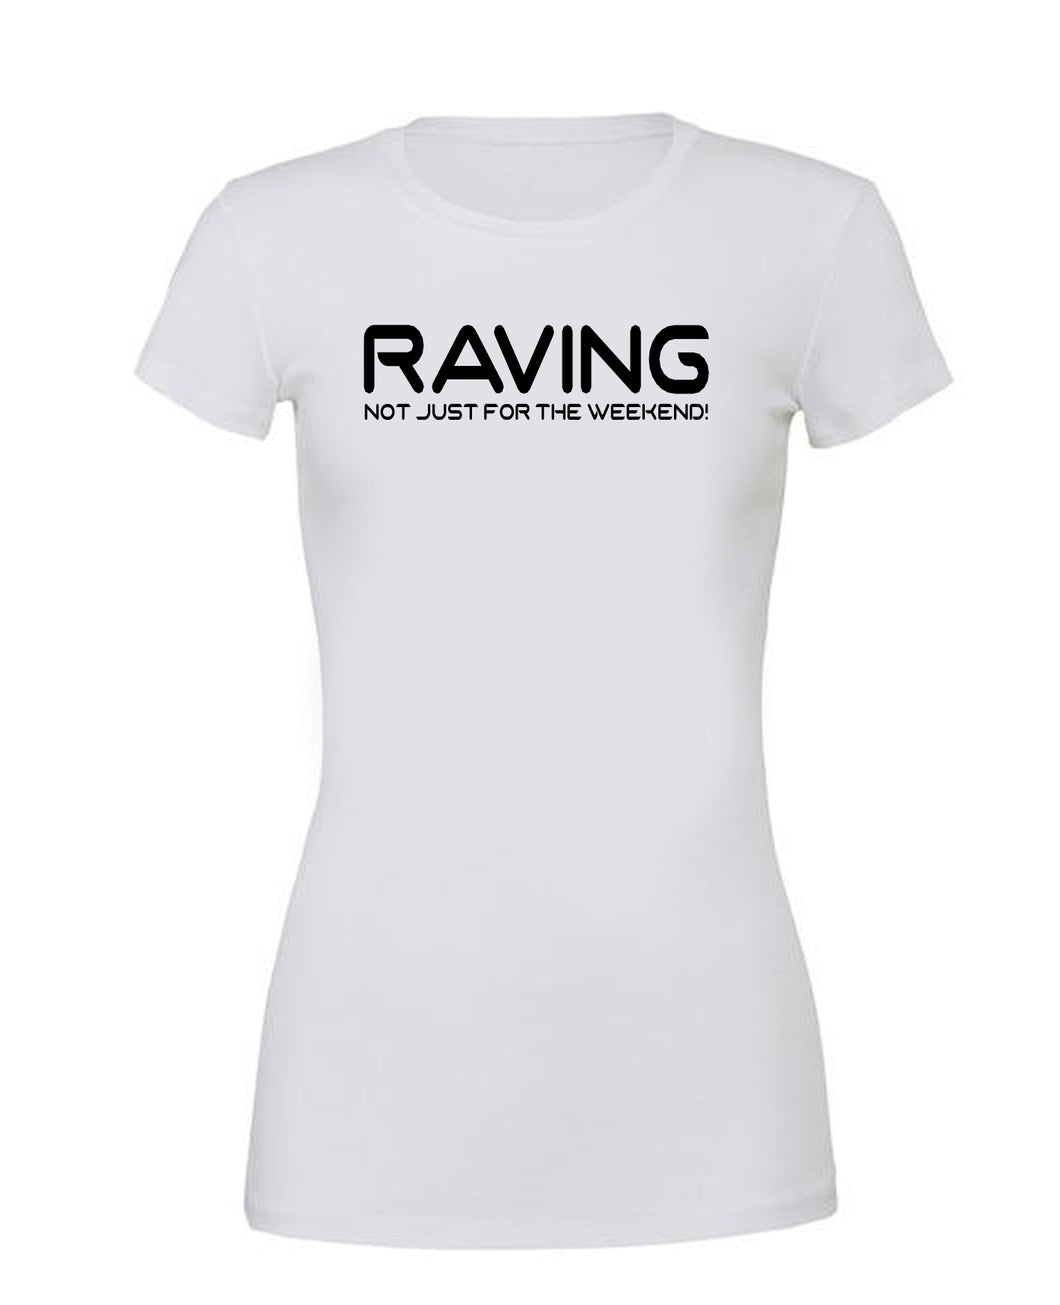 RAVING NOT JUST FOR THE WEEKEND! - T Shirt White - SoreTodayStrongTomorrow